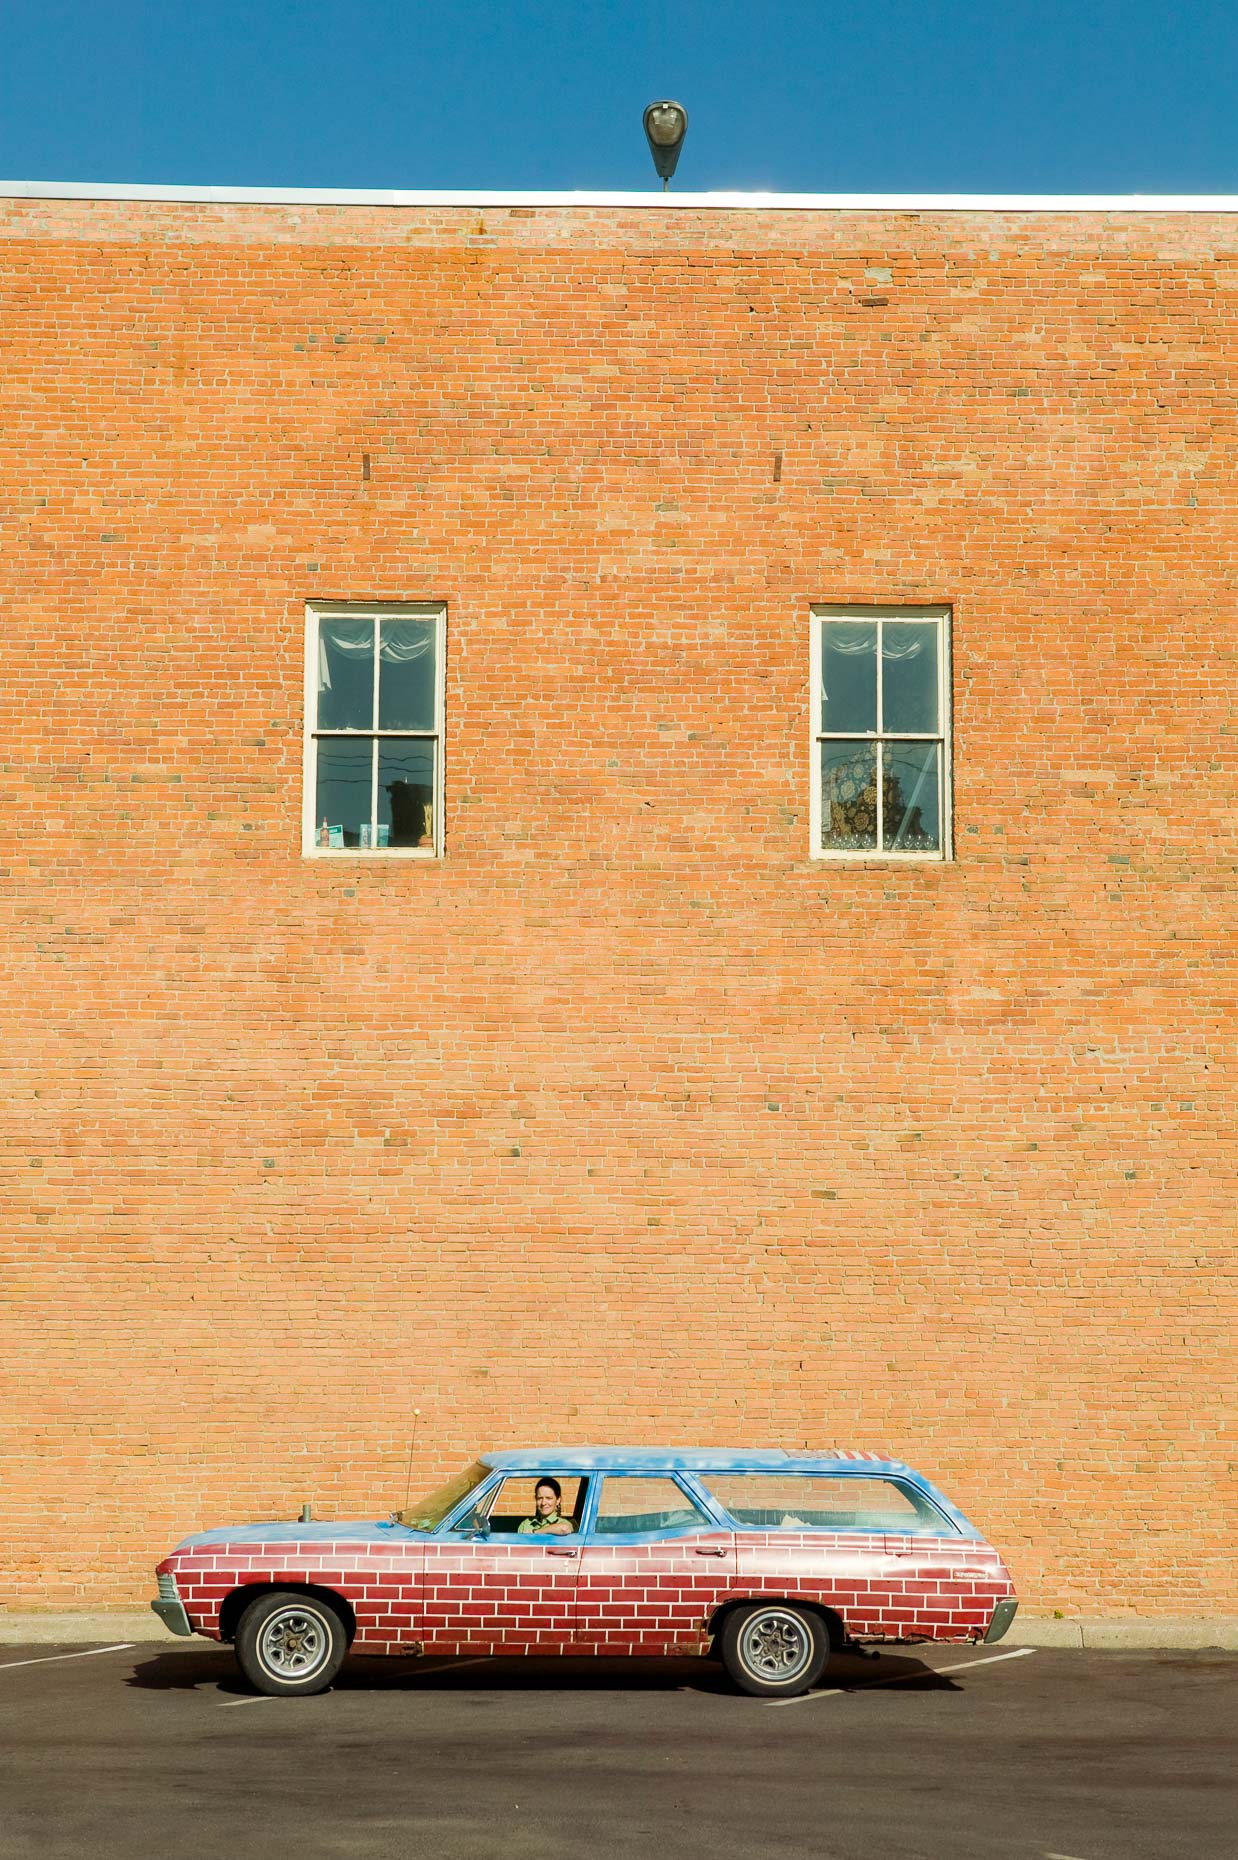 Portrait of woman in station wagon vehicle car painted with brick pattern in front of brick wall in Missoula, Montana by David Zaitz